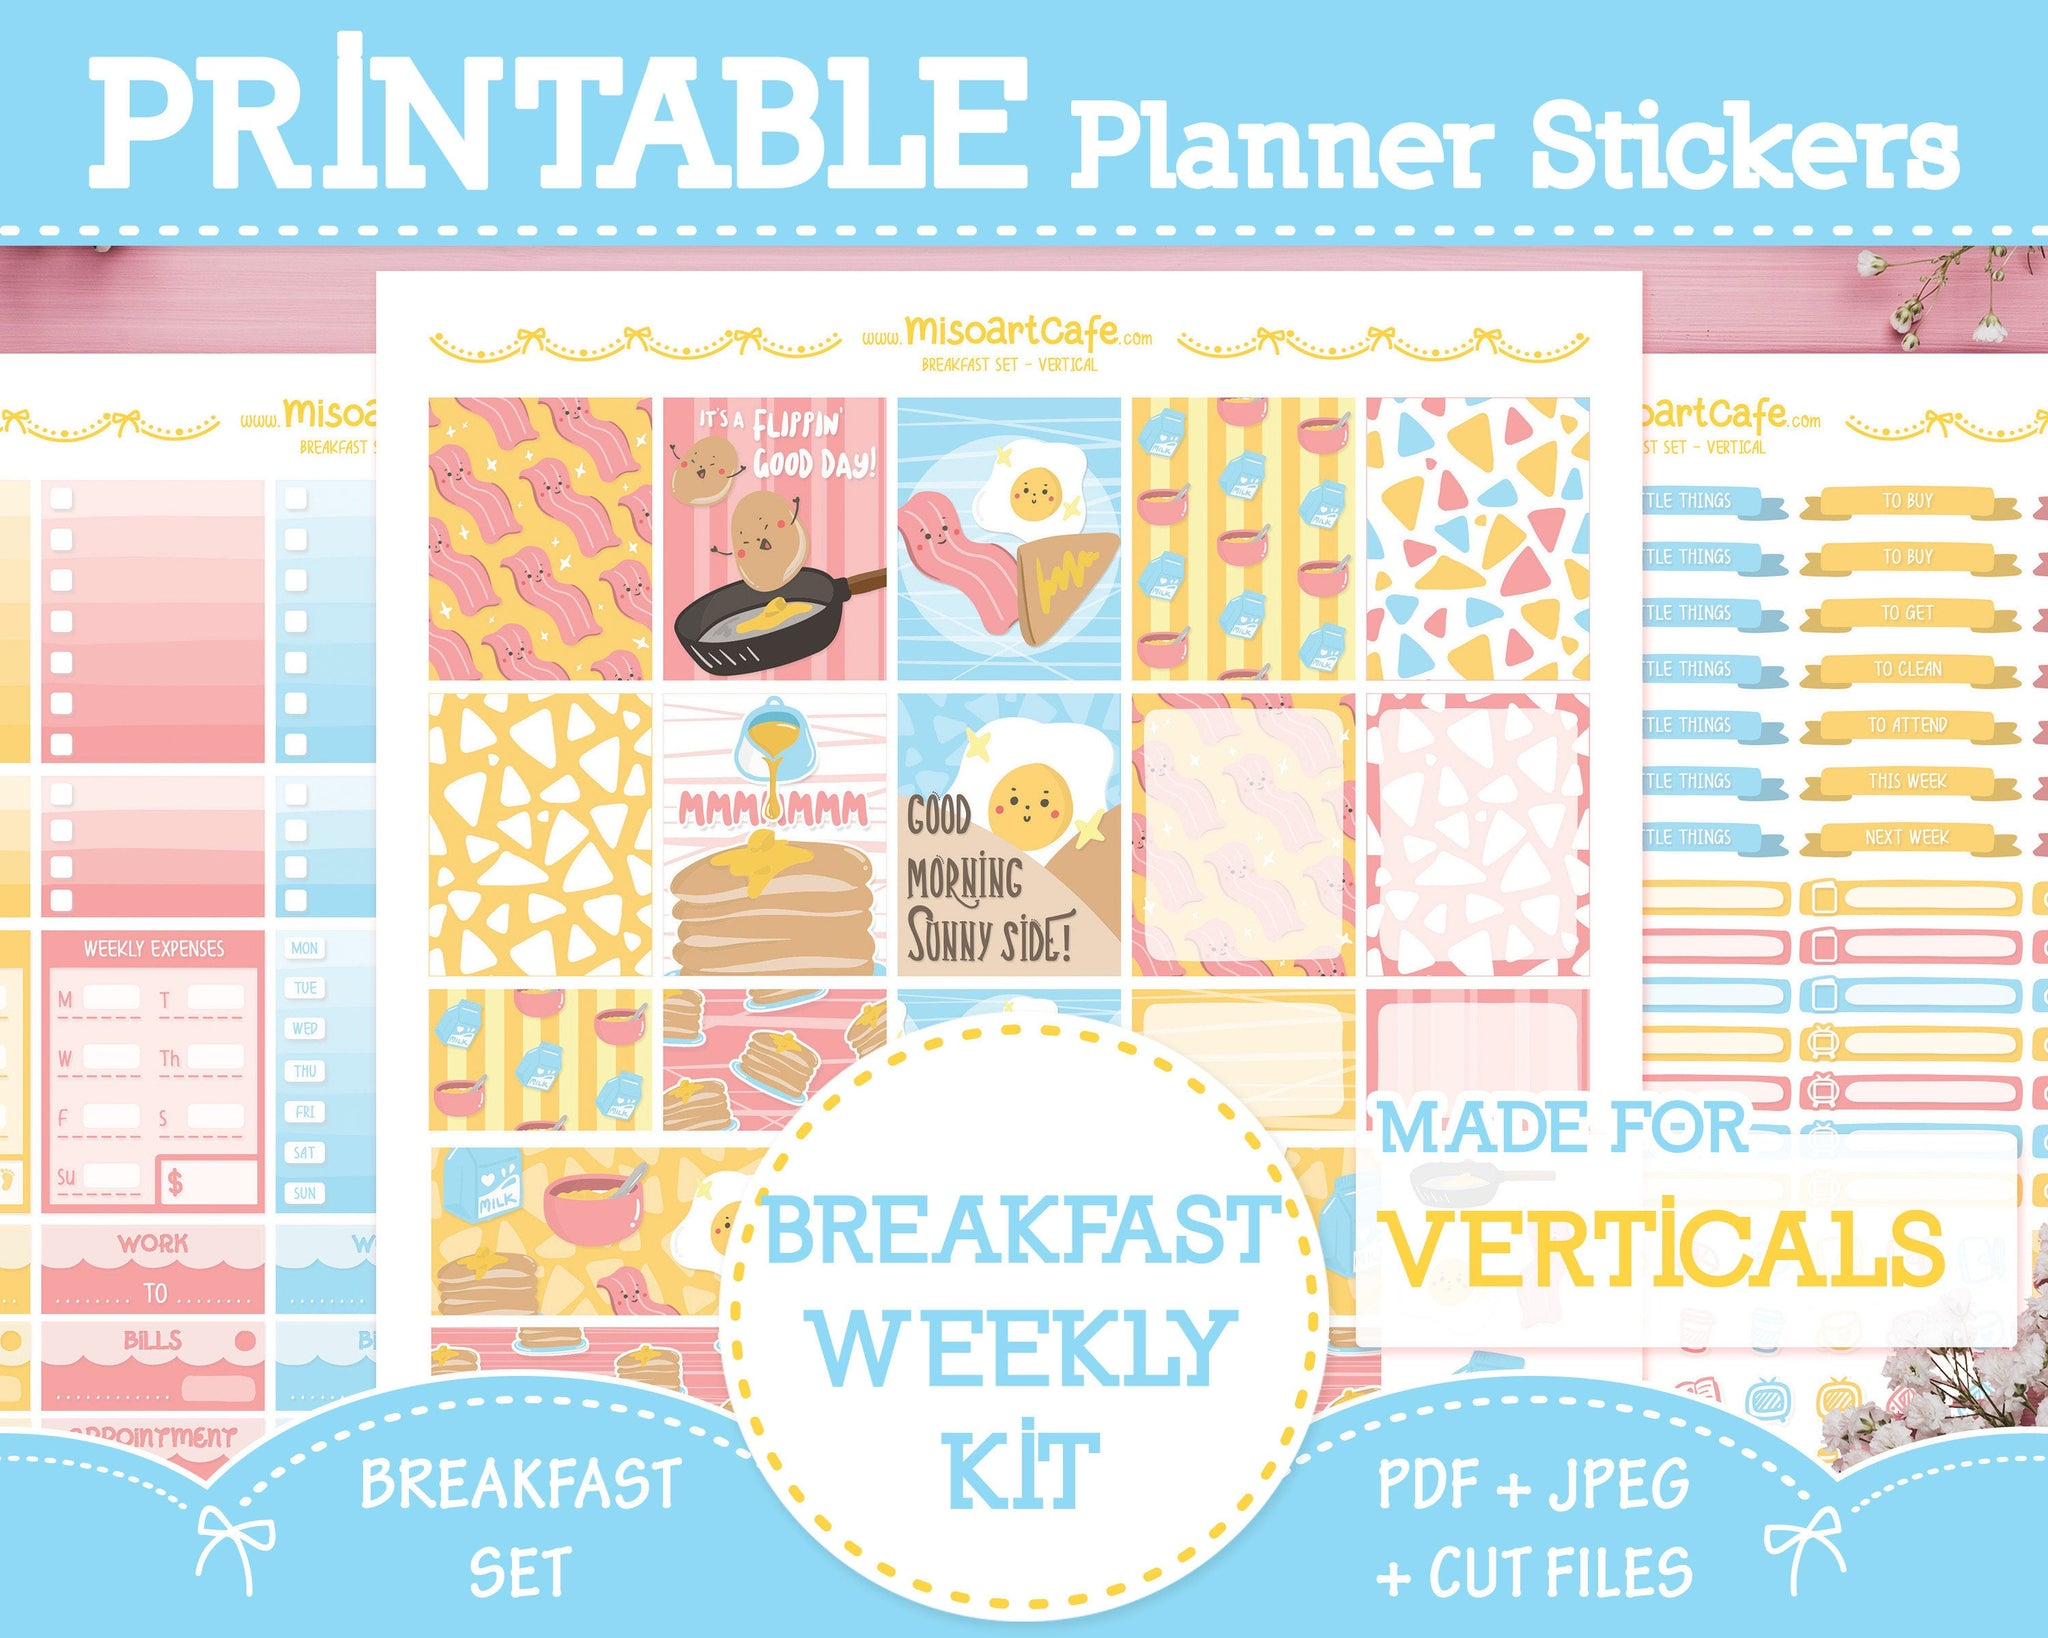 Printable Breakfast Set Weekly Kit - Standard Vertical